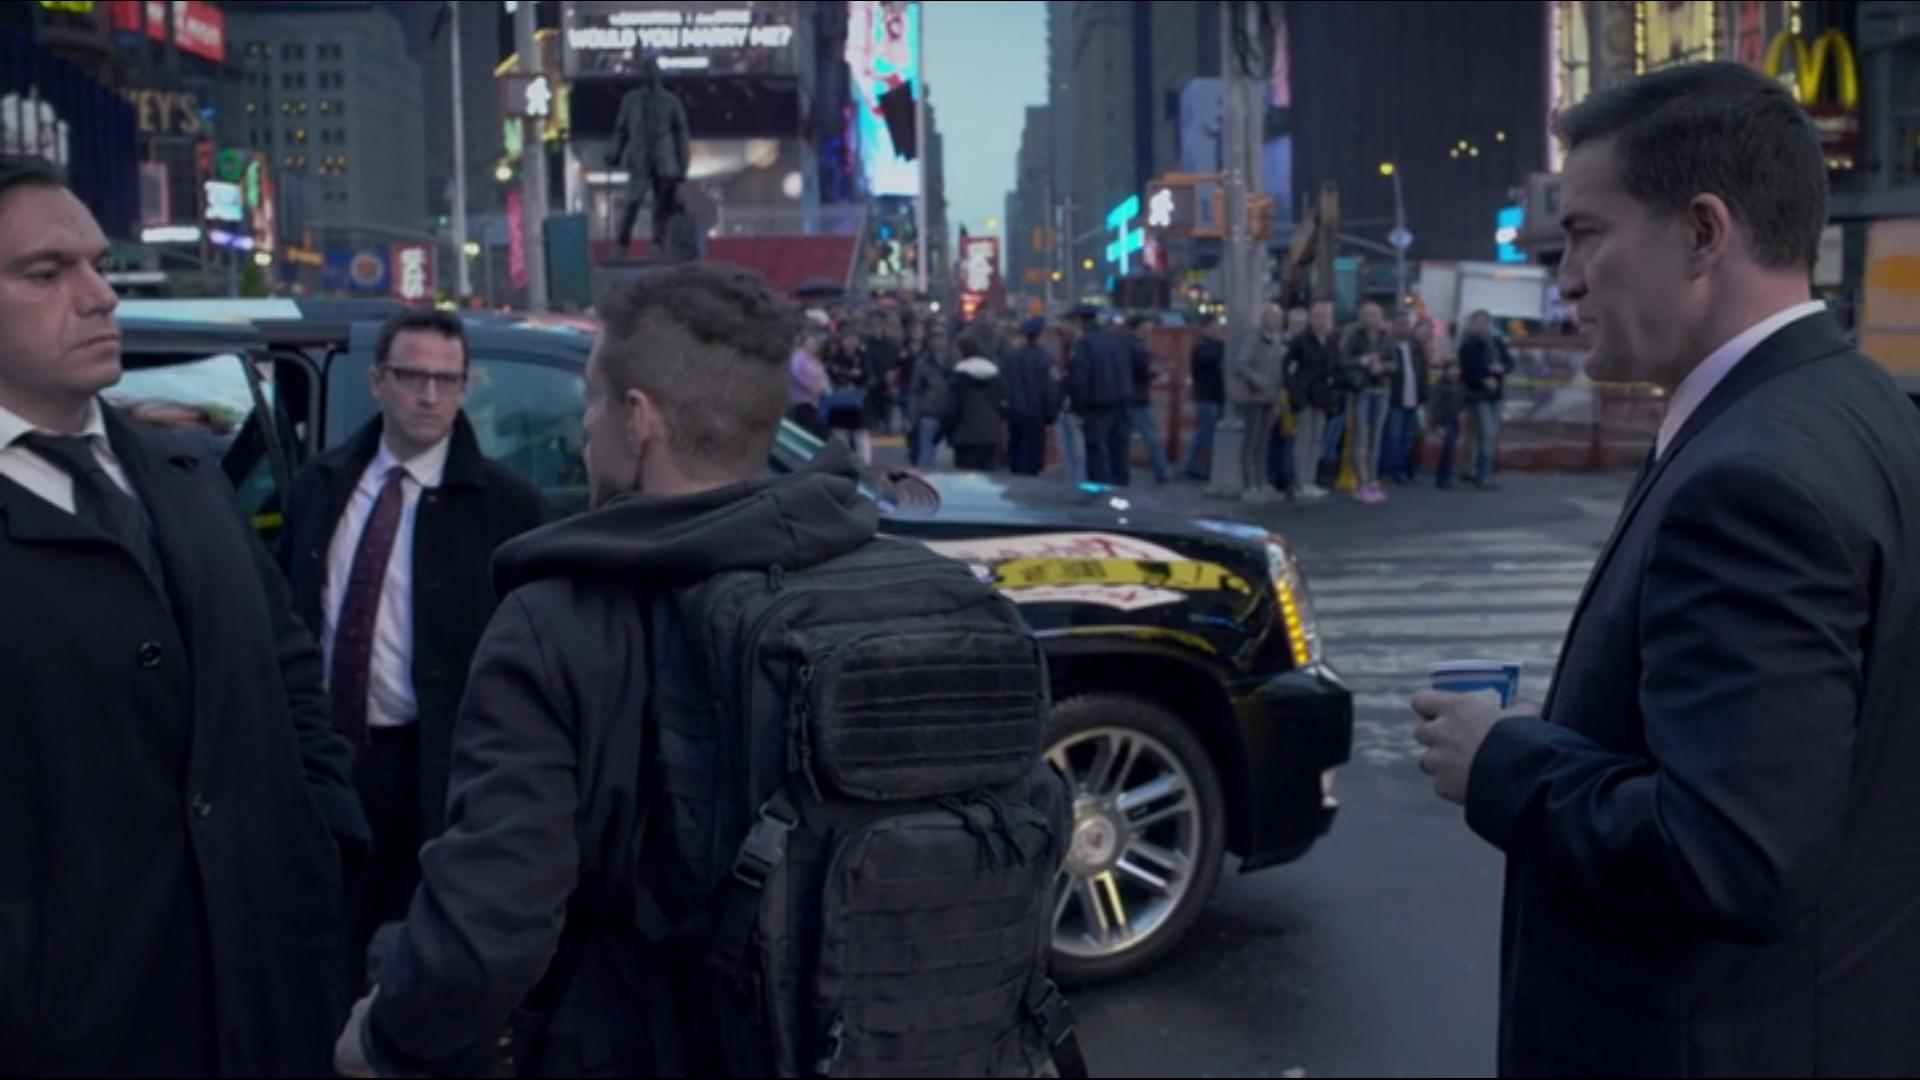 What Backpack Does Elliot From Mr Robot Use?